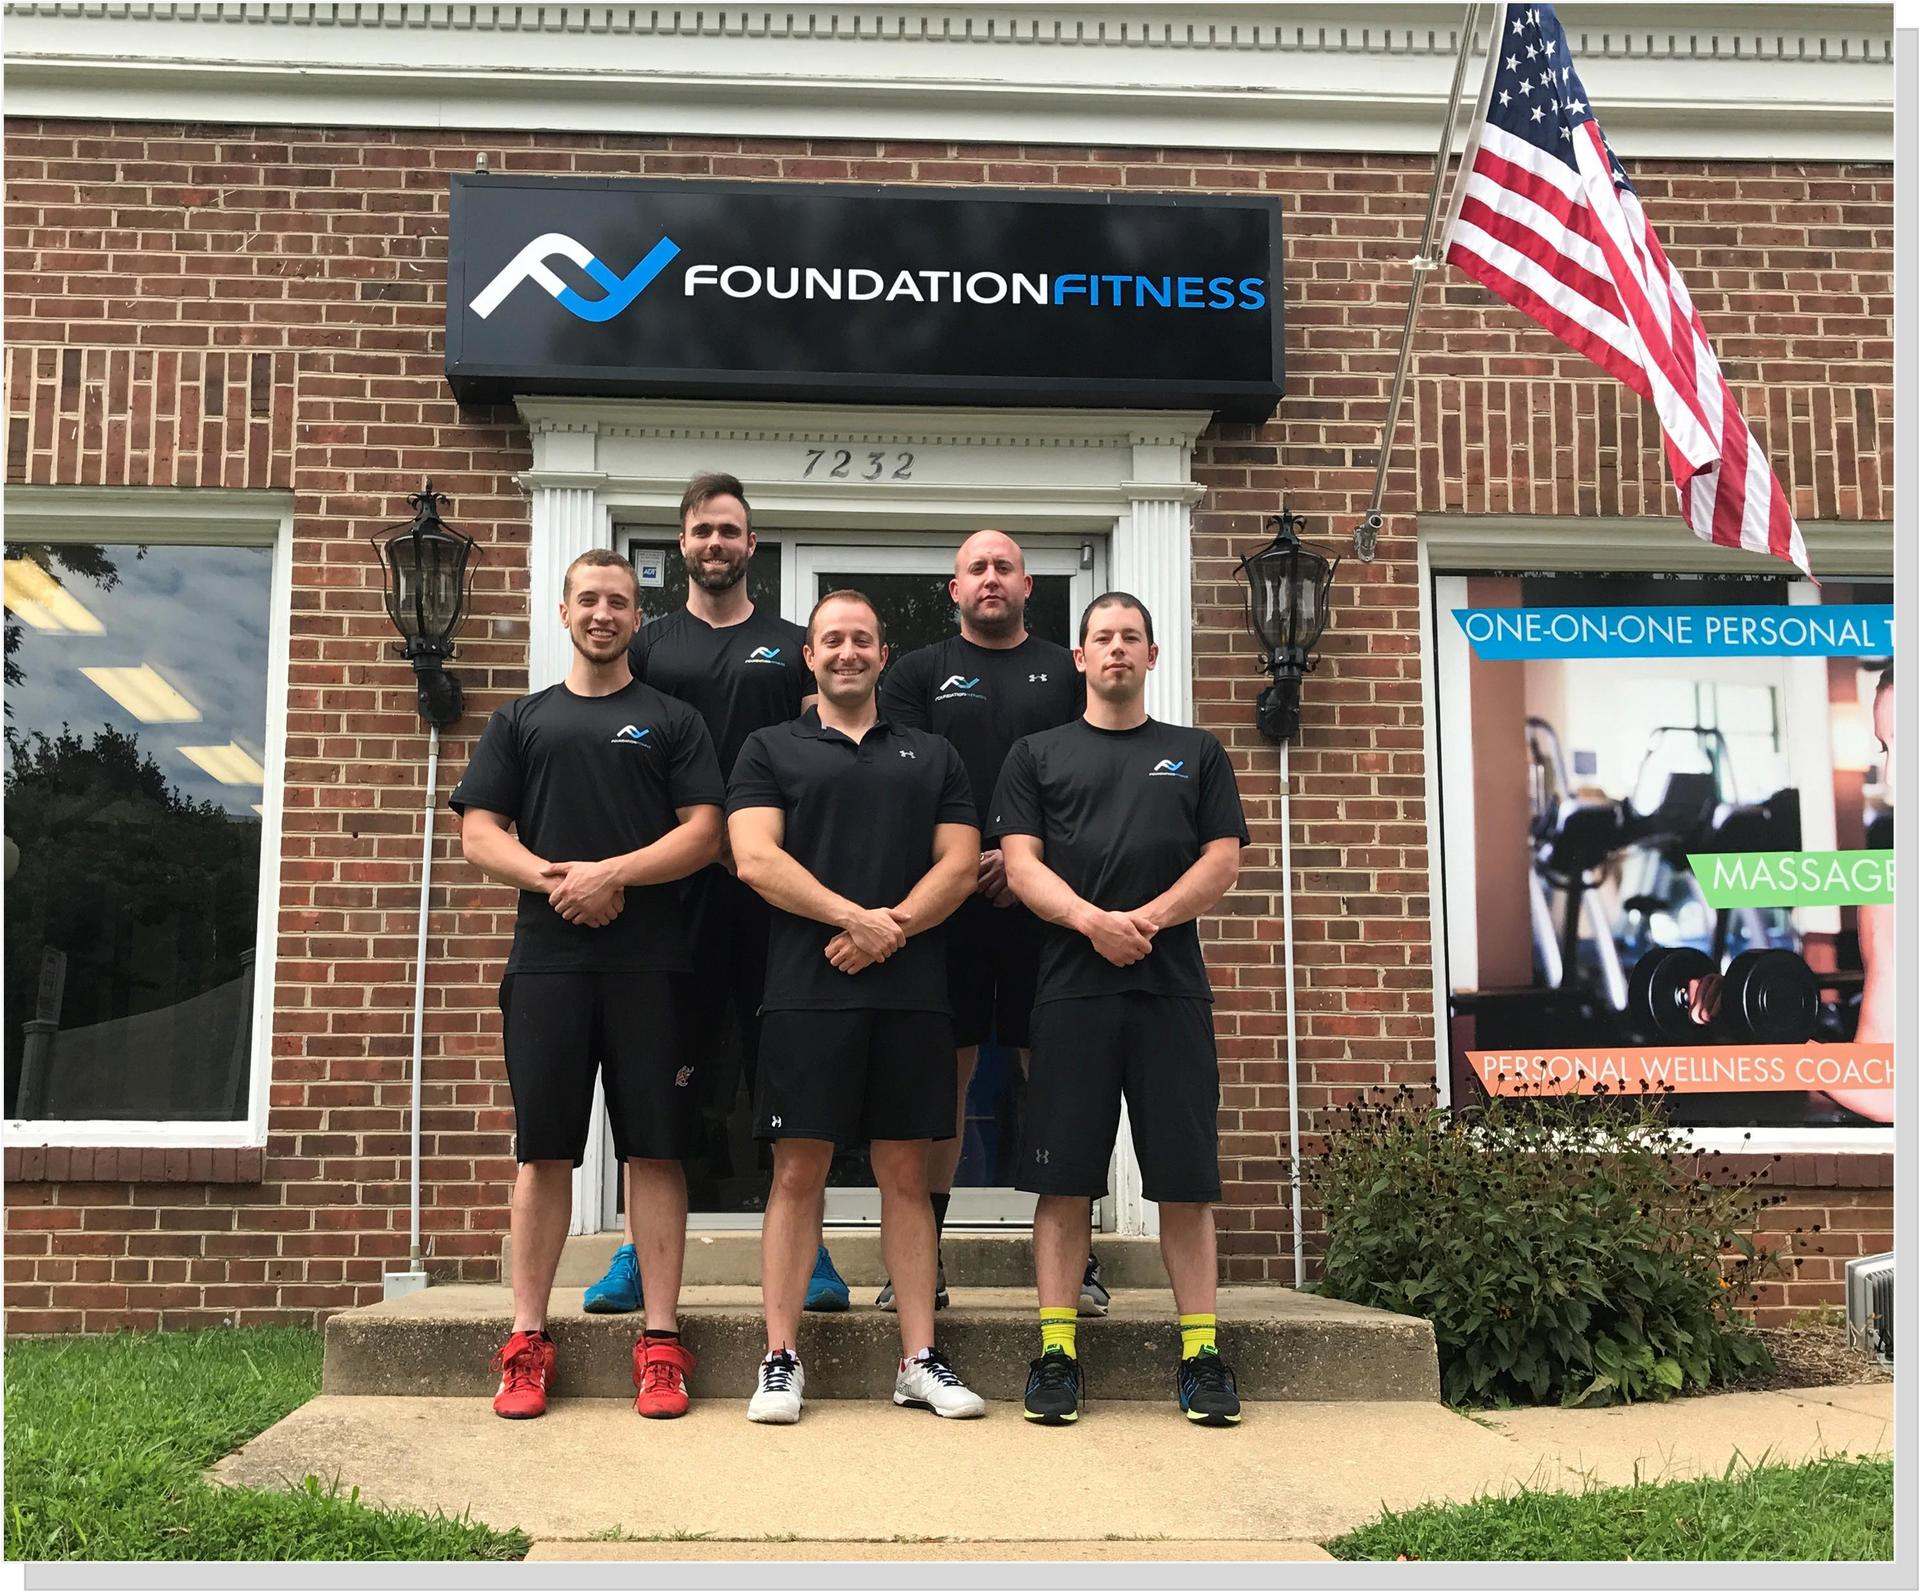 Foundation Fitness, 7232 Columbia Pike, Annandale, VA (across from Walgreen's)